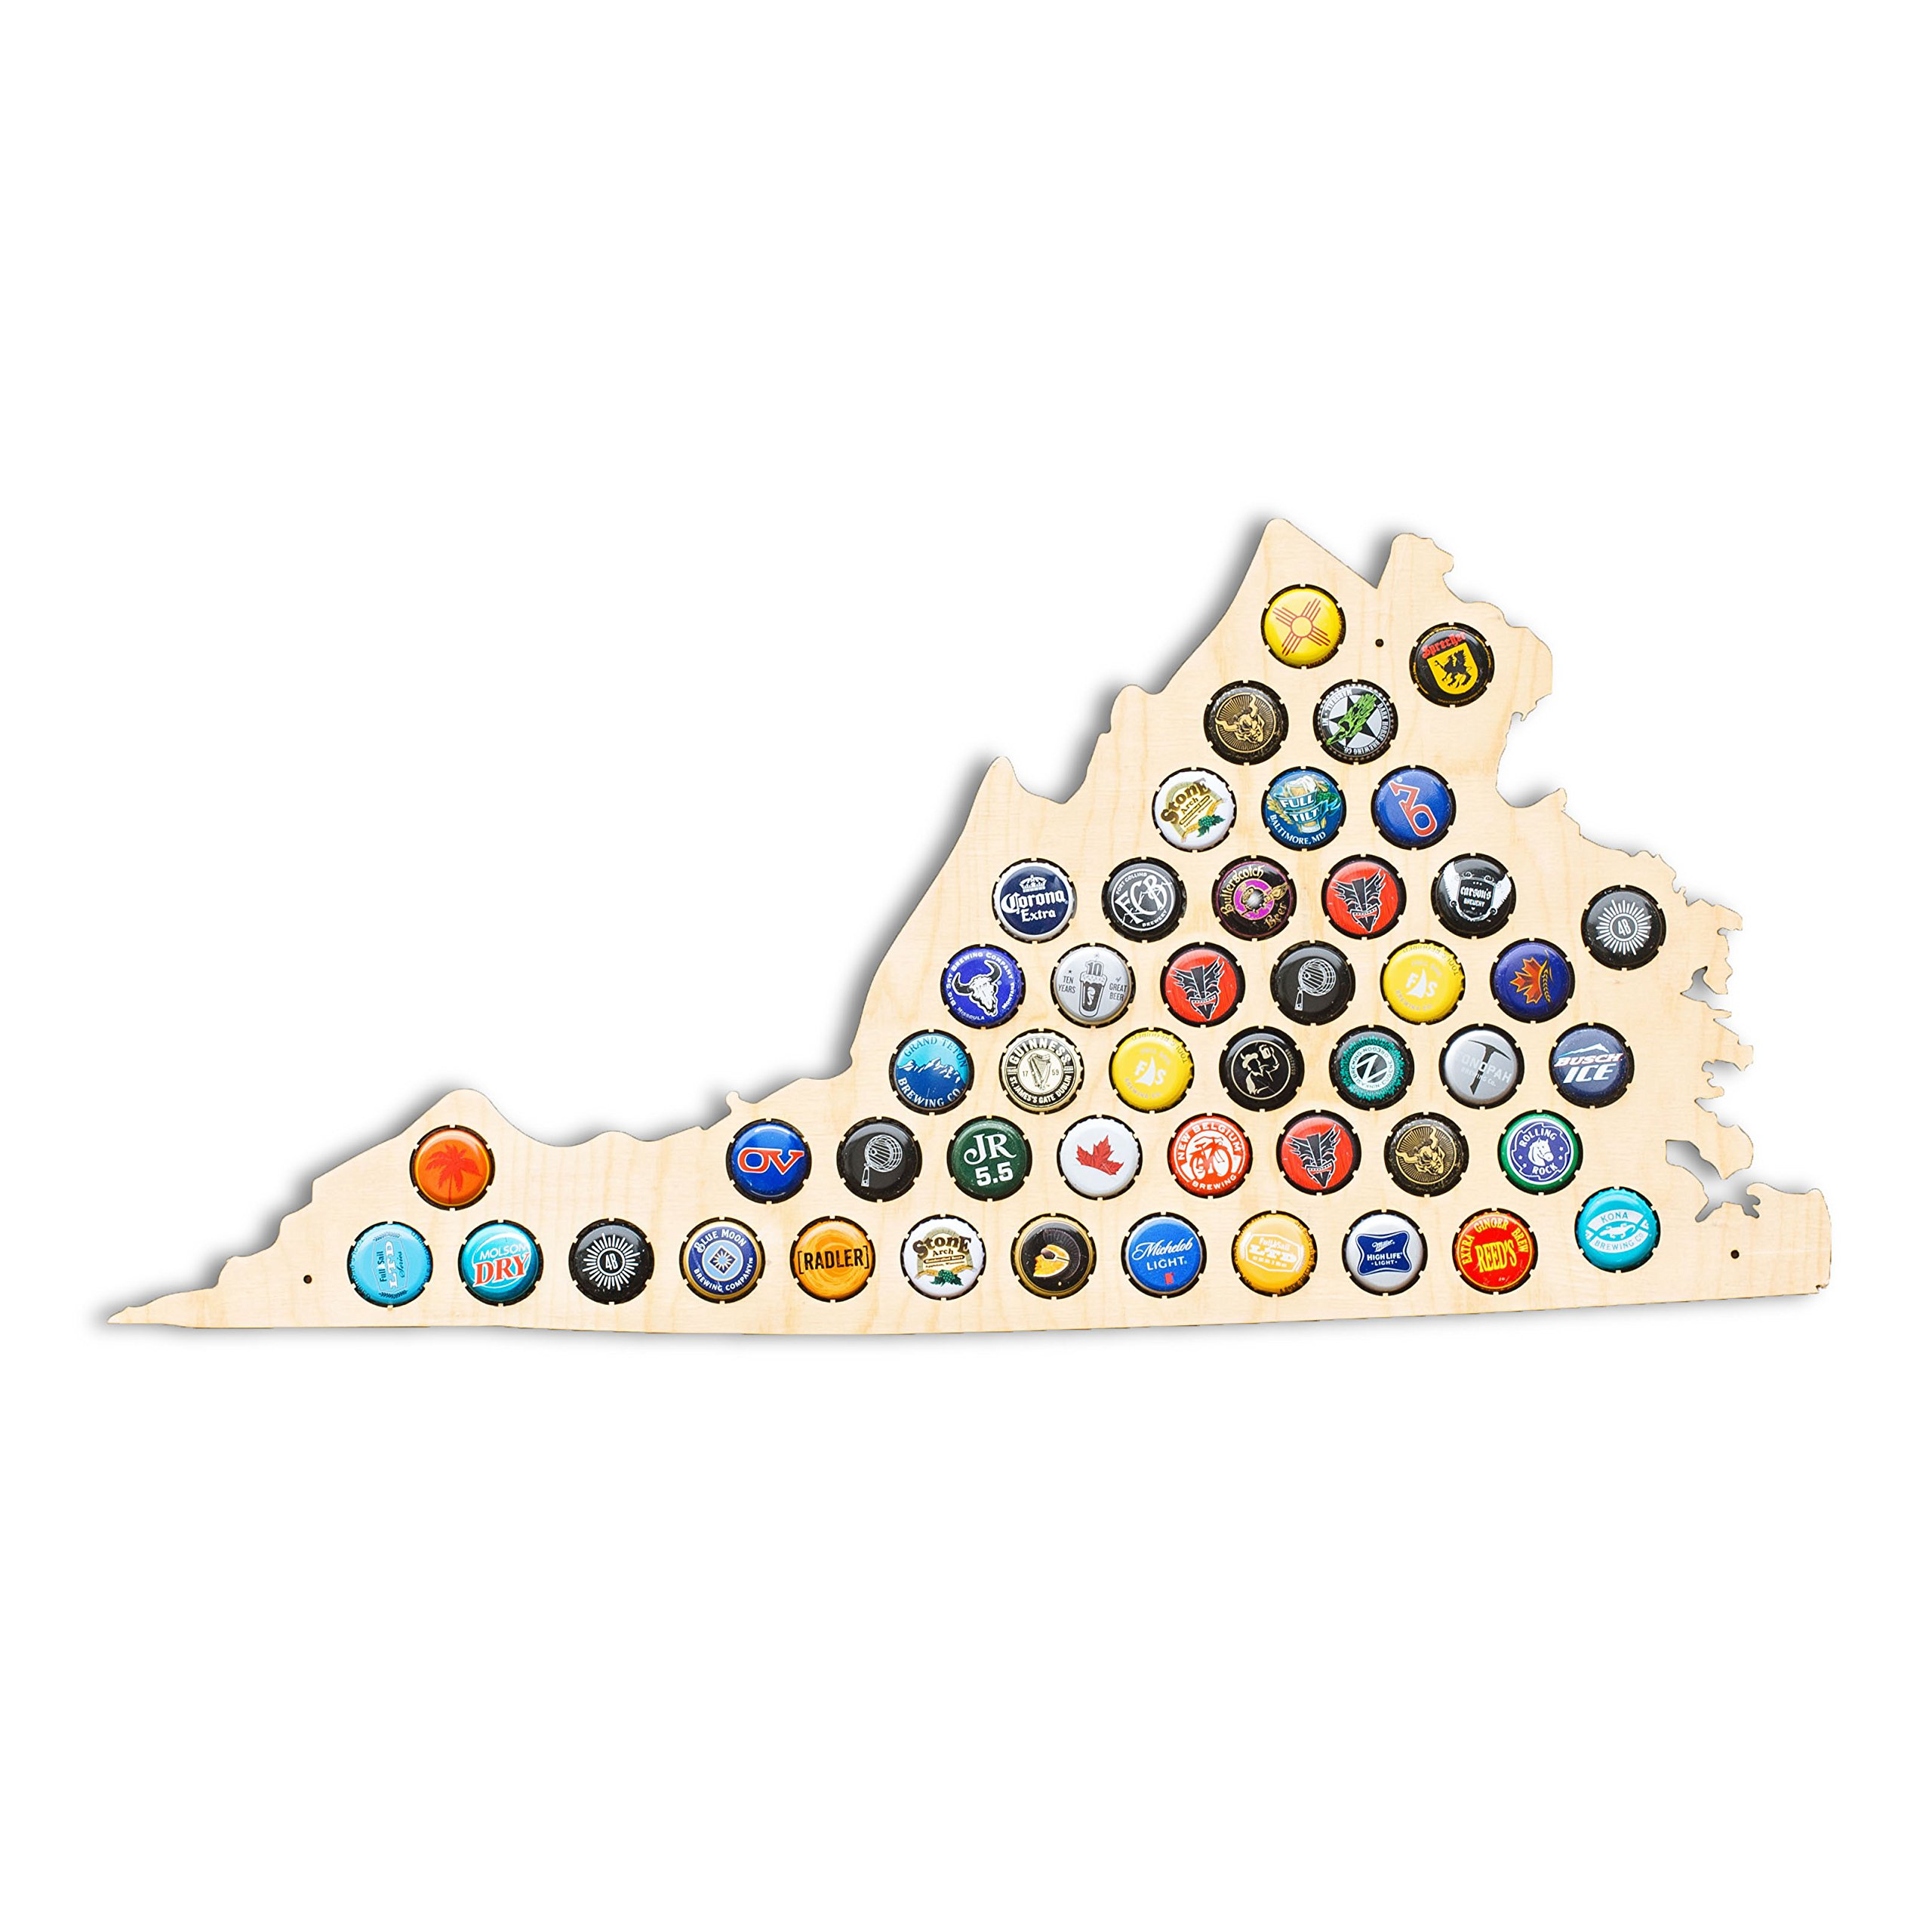 Virginia Beer Cap Map - NC Craft Beer Cap Holder, Gifts for Him (Natural)